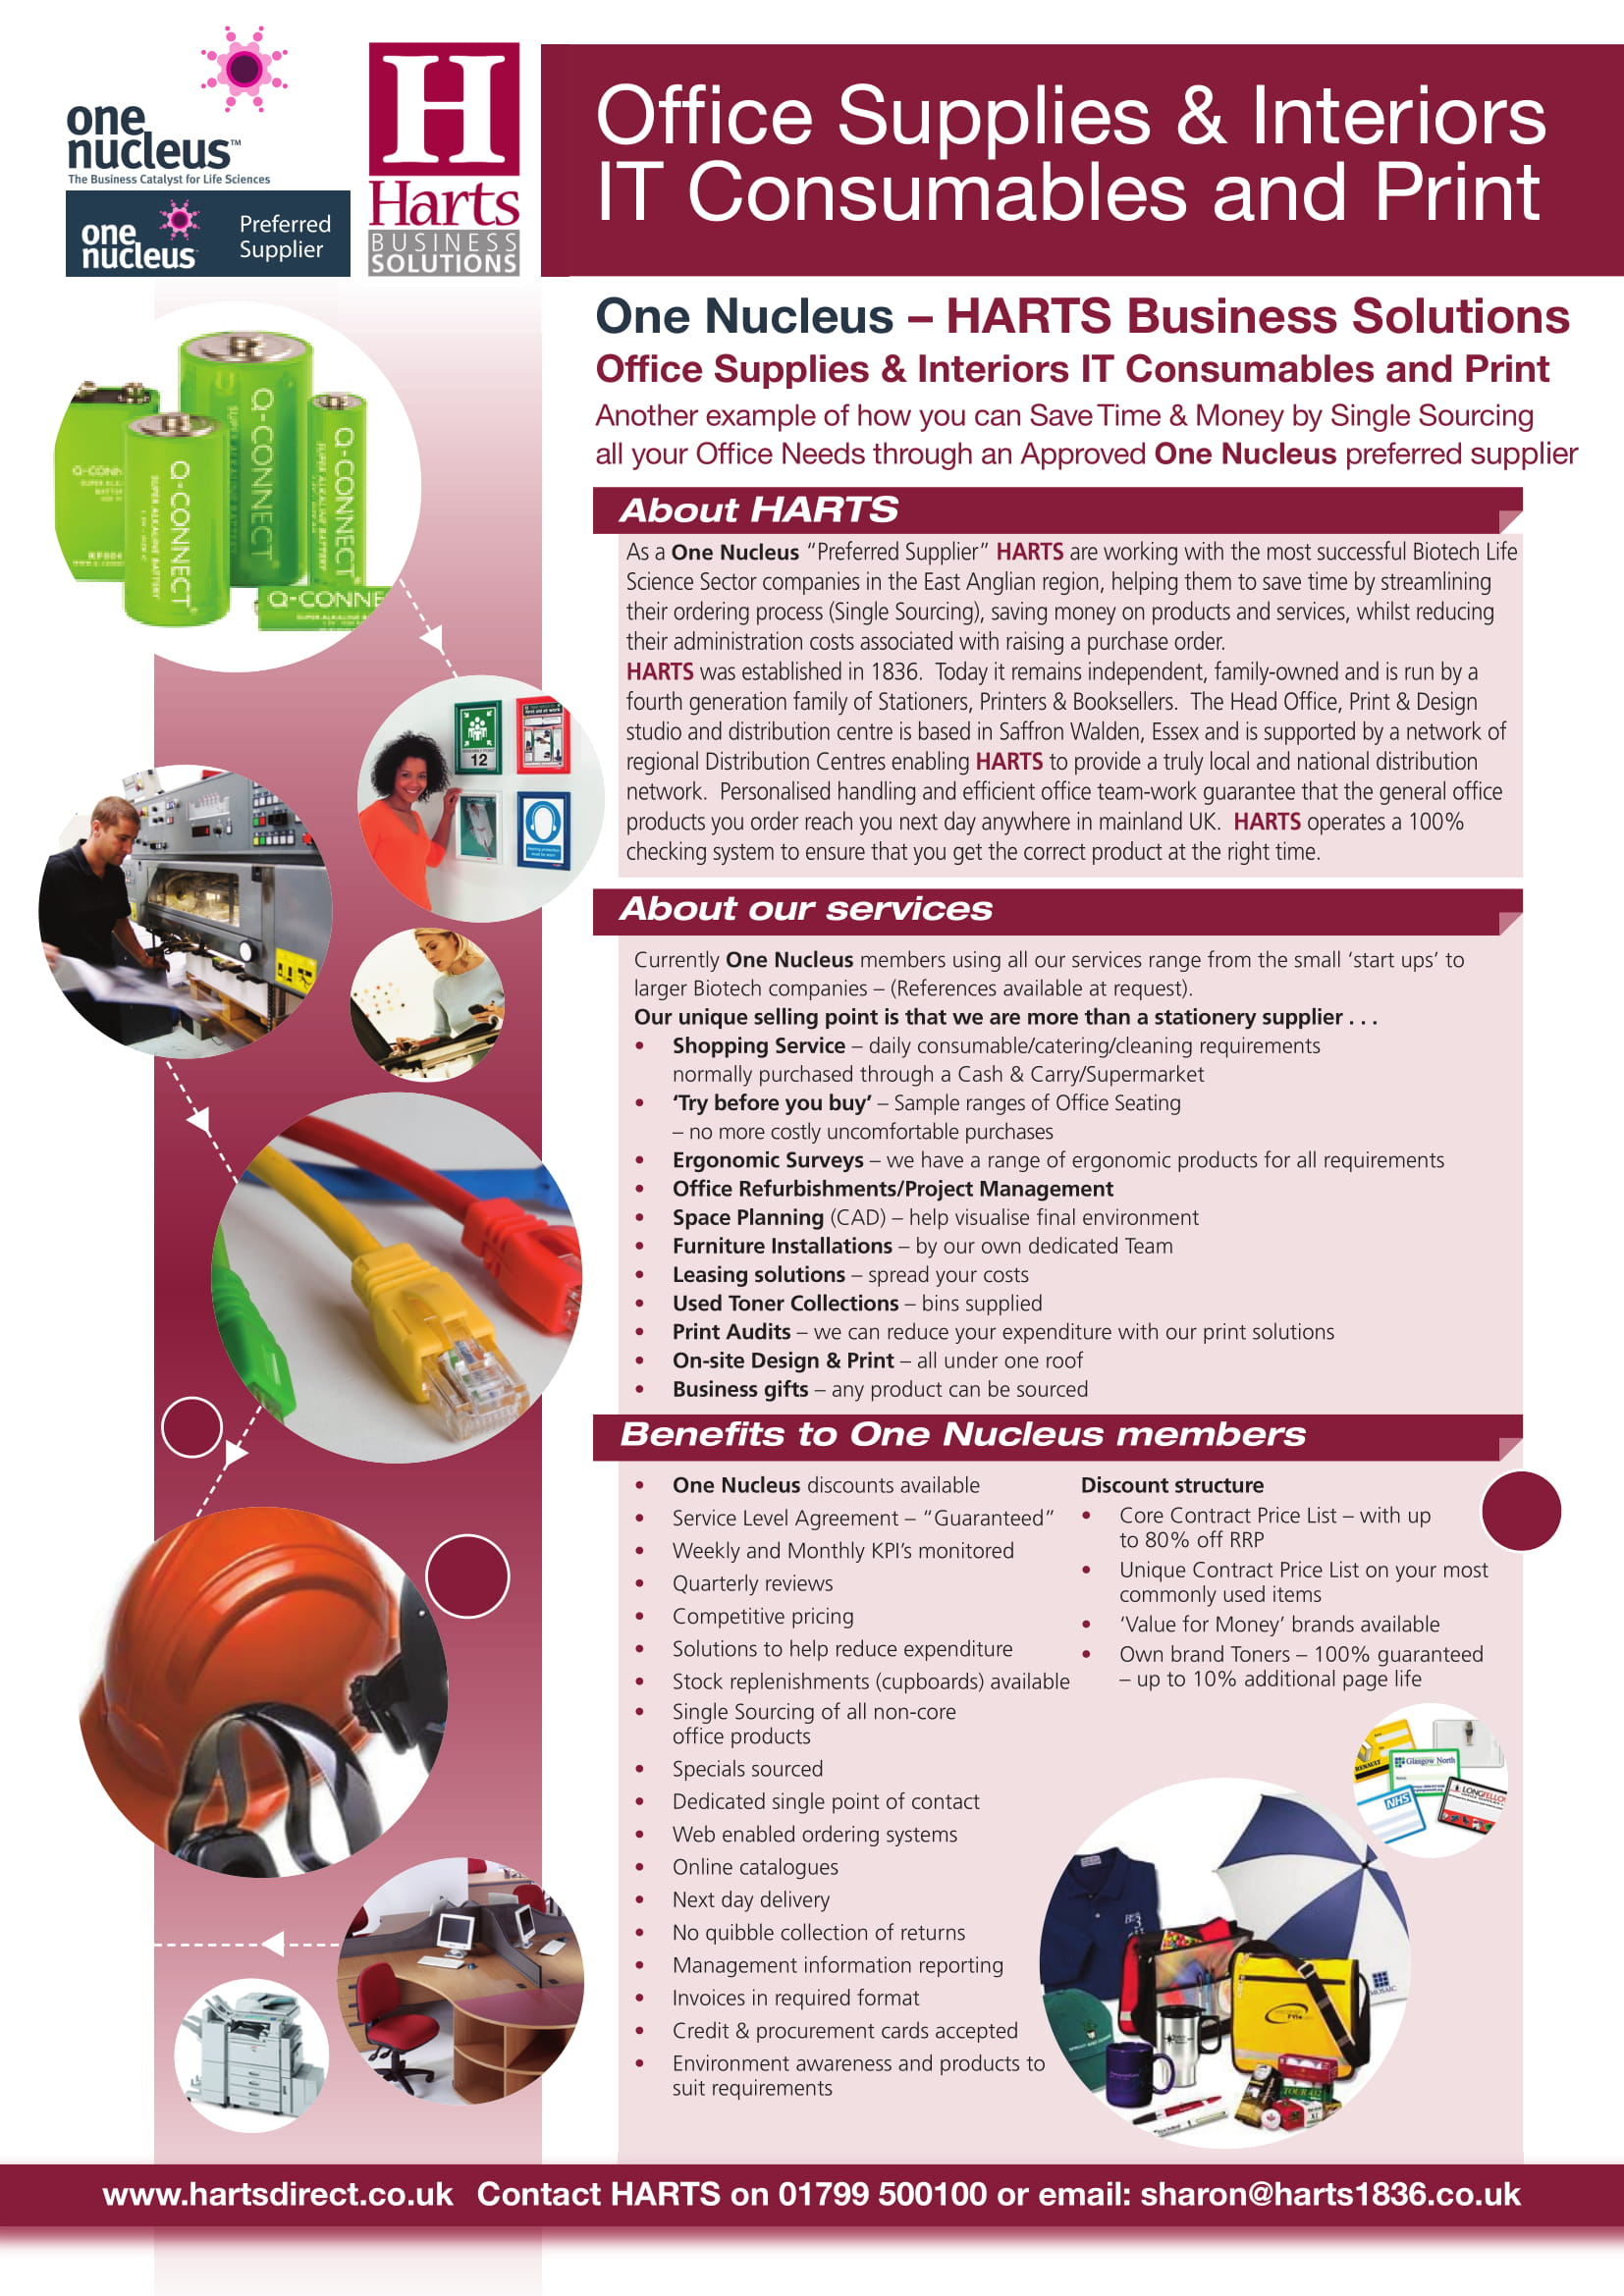 office supplies interiors it consumables and print example 1